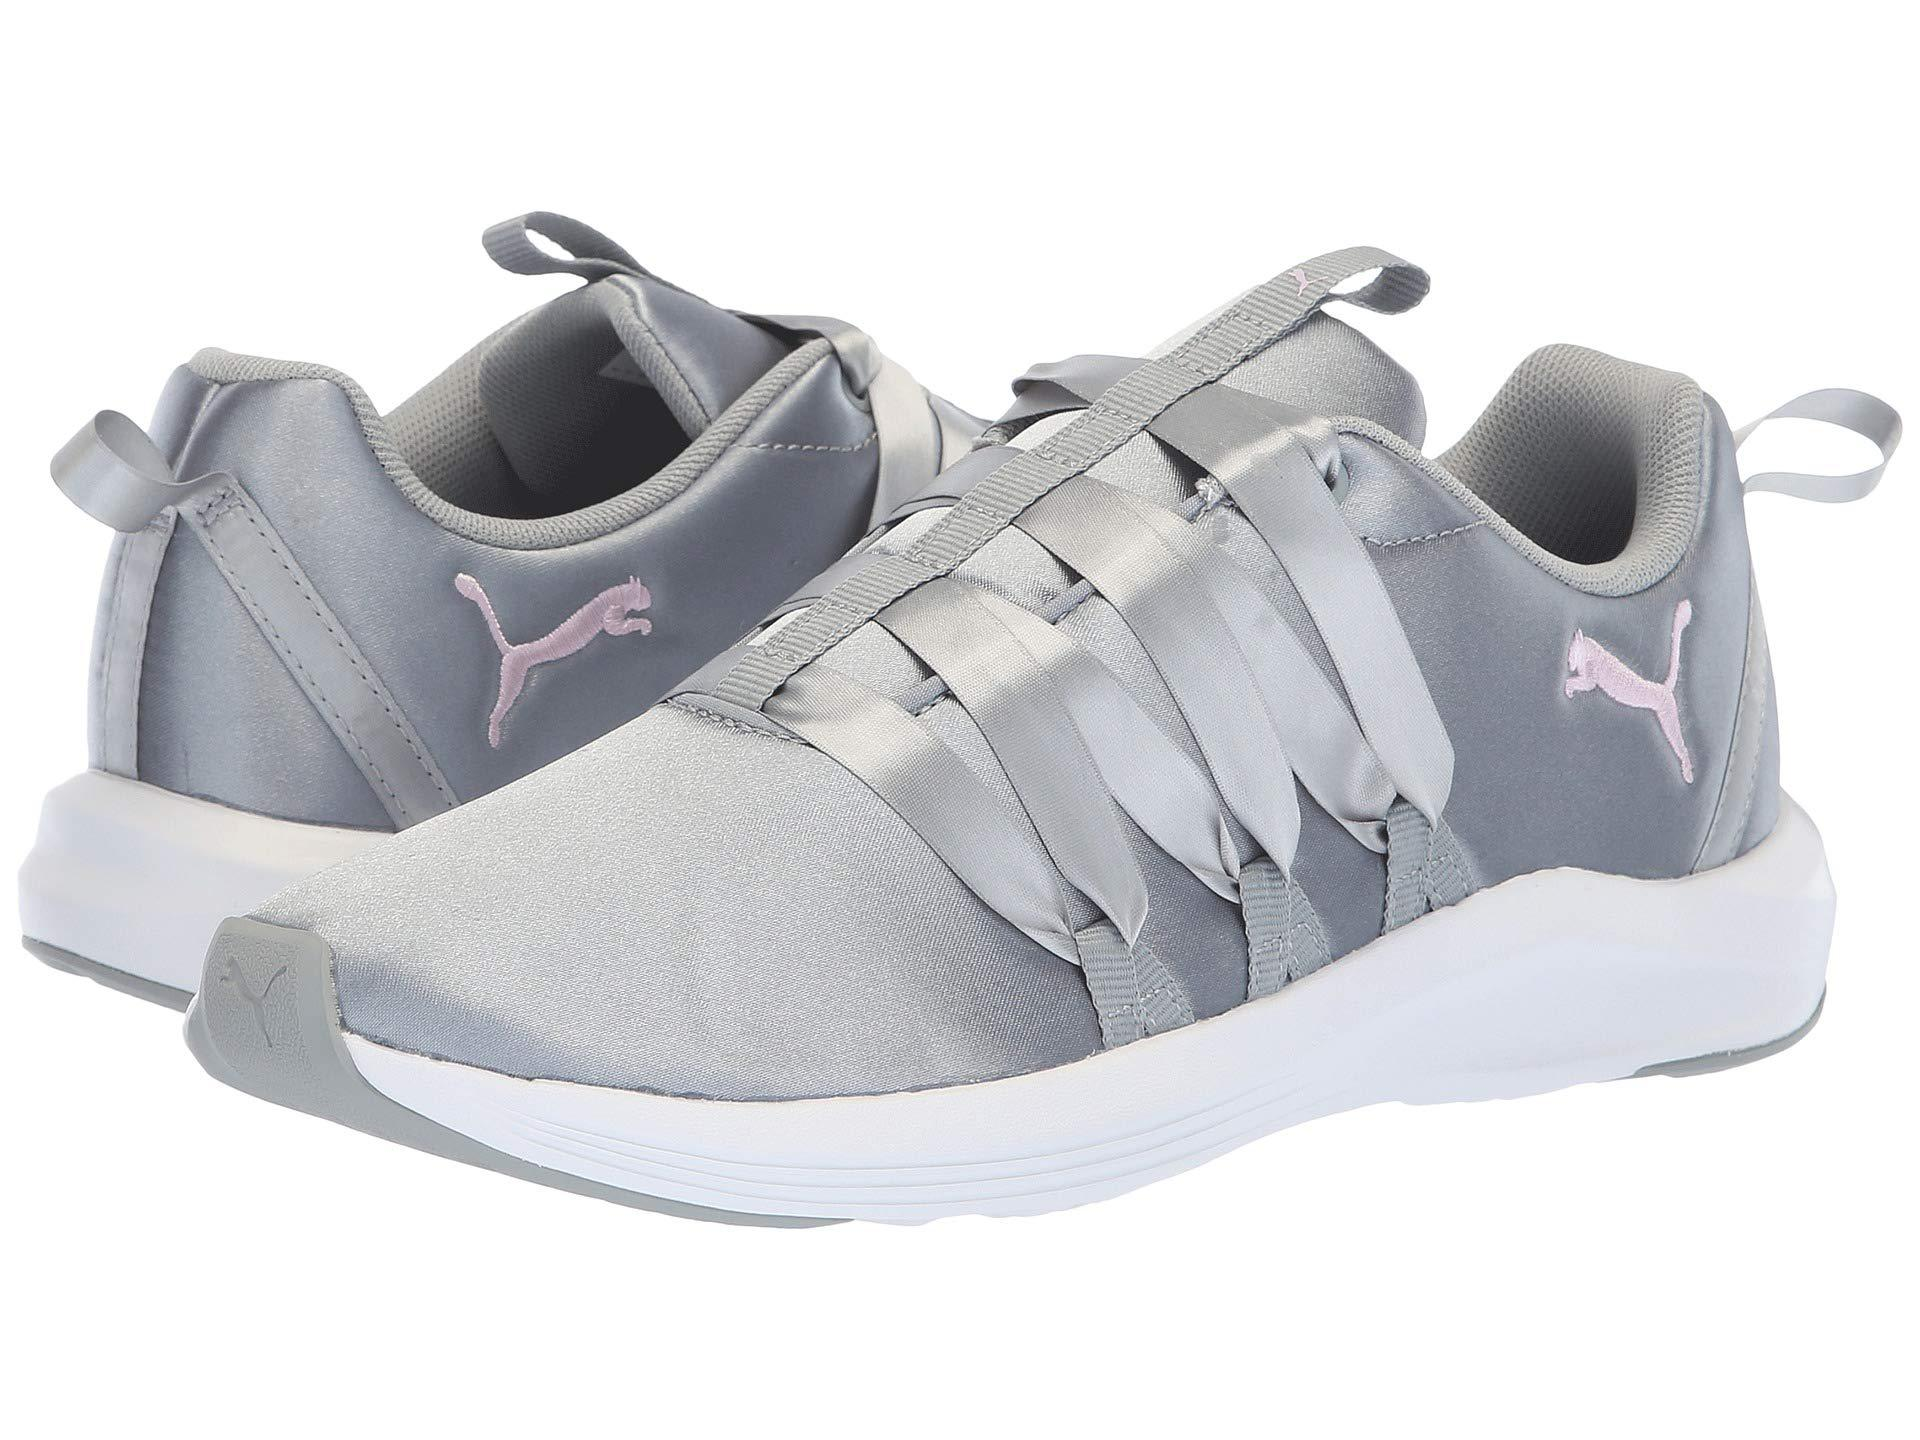 Lyst - PUMA Prowl Alt Satin in White - Save 44% 01fd8547c